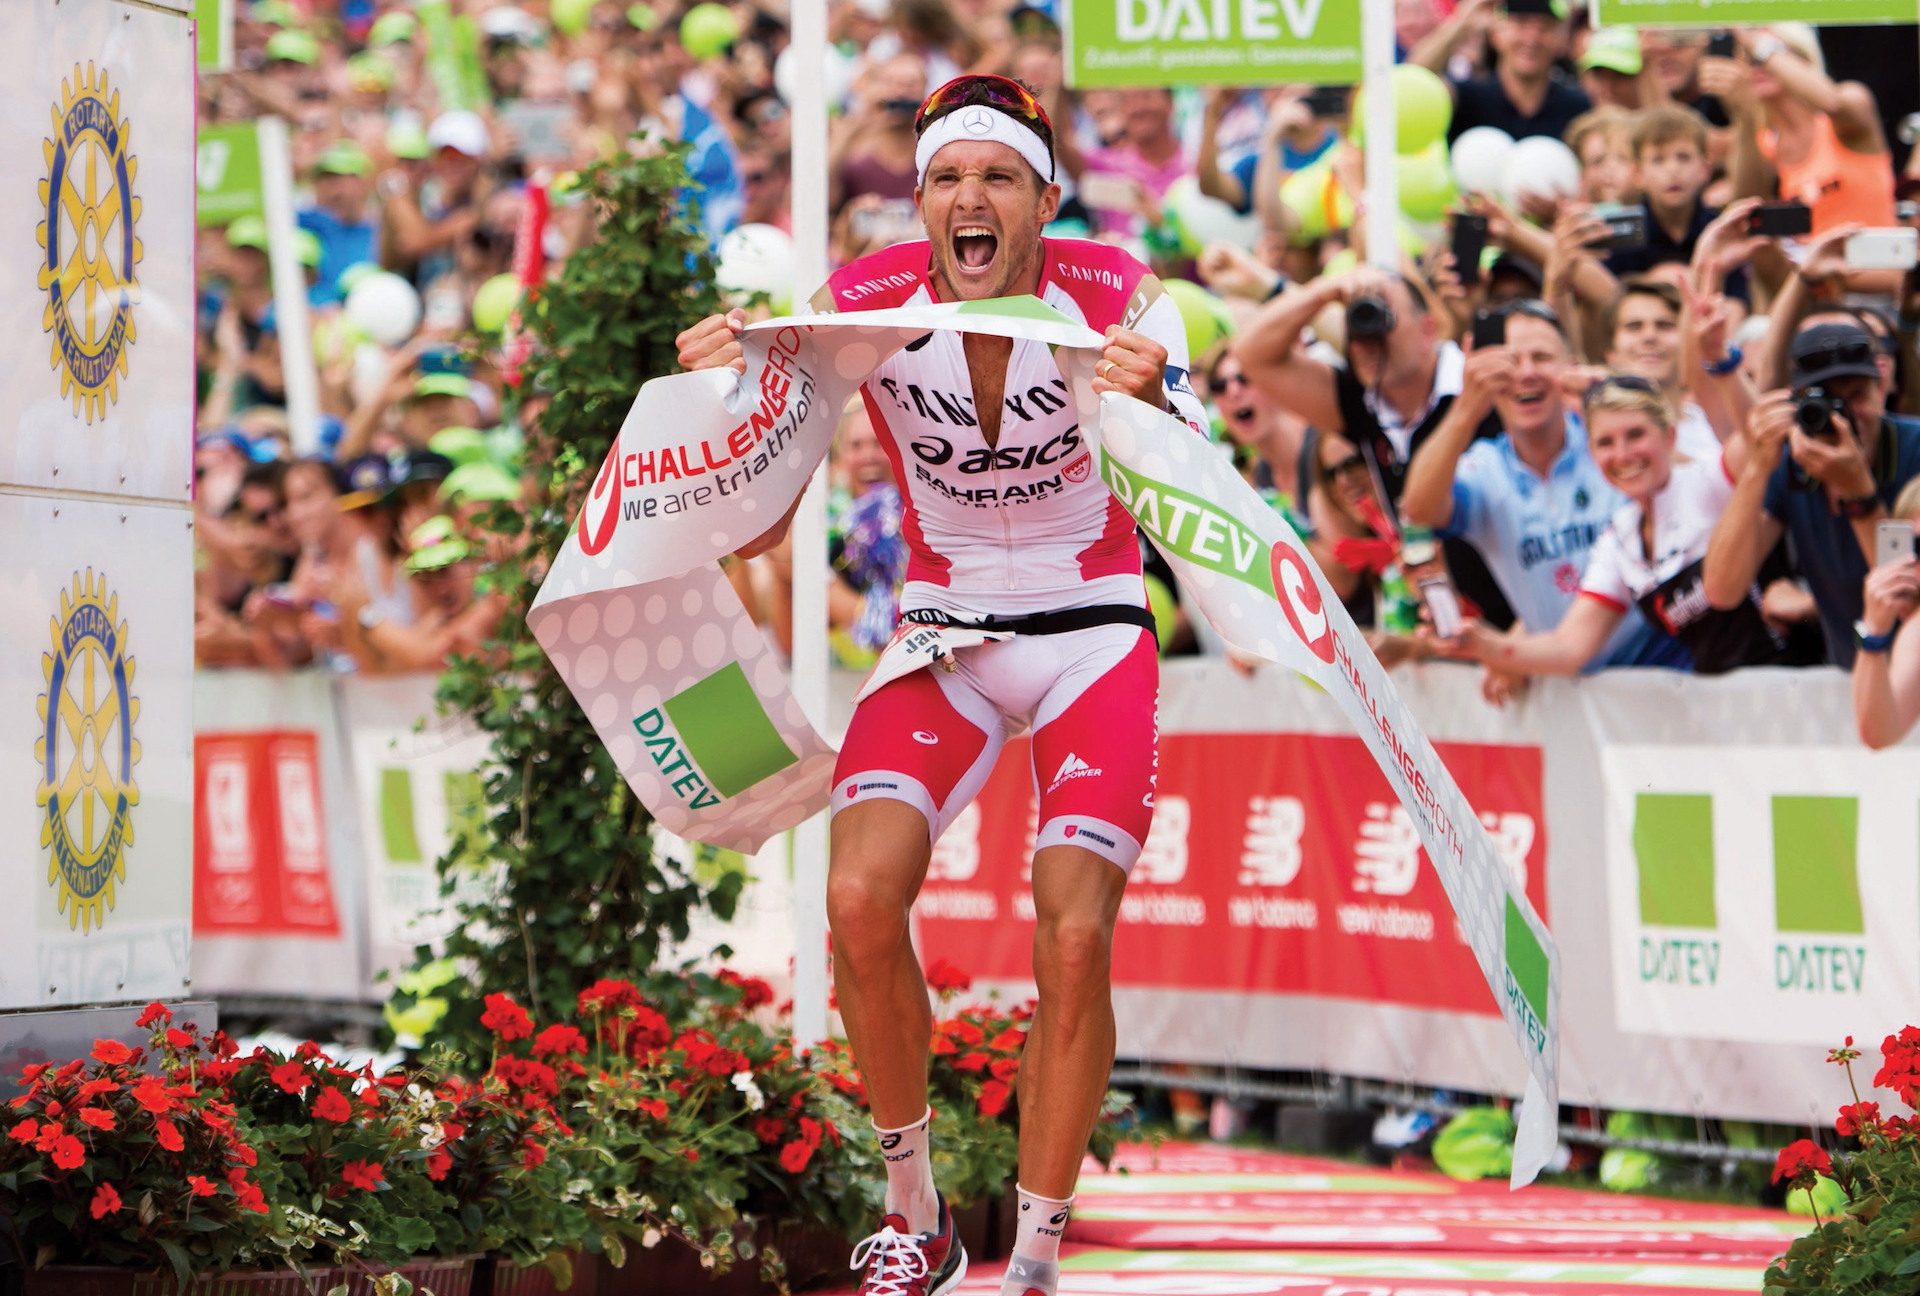 ROTH, GERMANY - JULY 17:  Jan Frodeno of Germany celebrates as he wins Challenge Triathlon Roth and sets a new world record on July 17, 2016 in Roth, Germany.  (Photo by Alex Caparros/Getty Images for Challenge) *** Local Caption *** Jan Frodeno